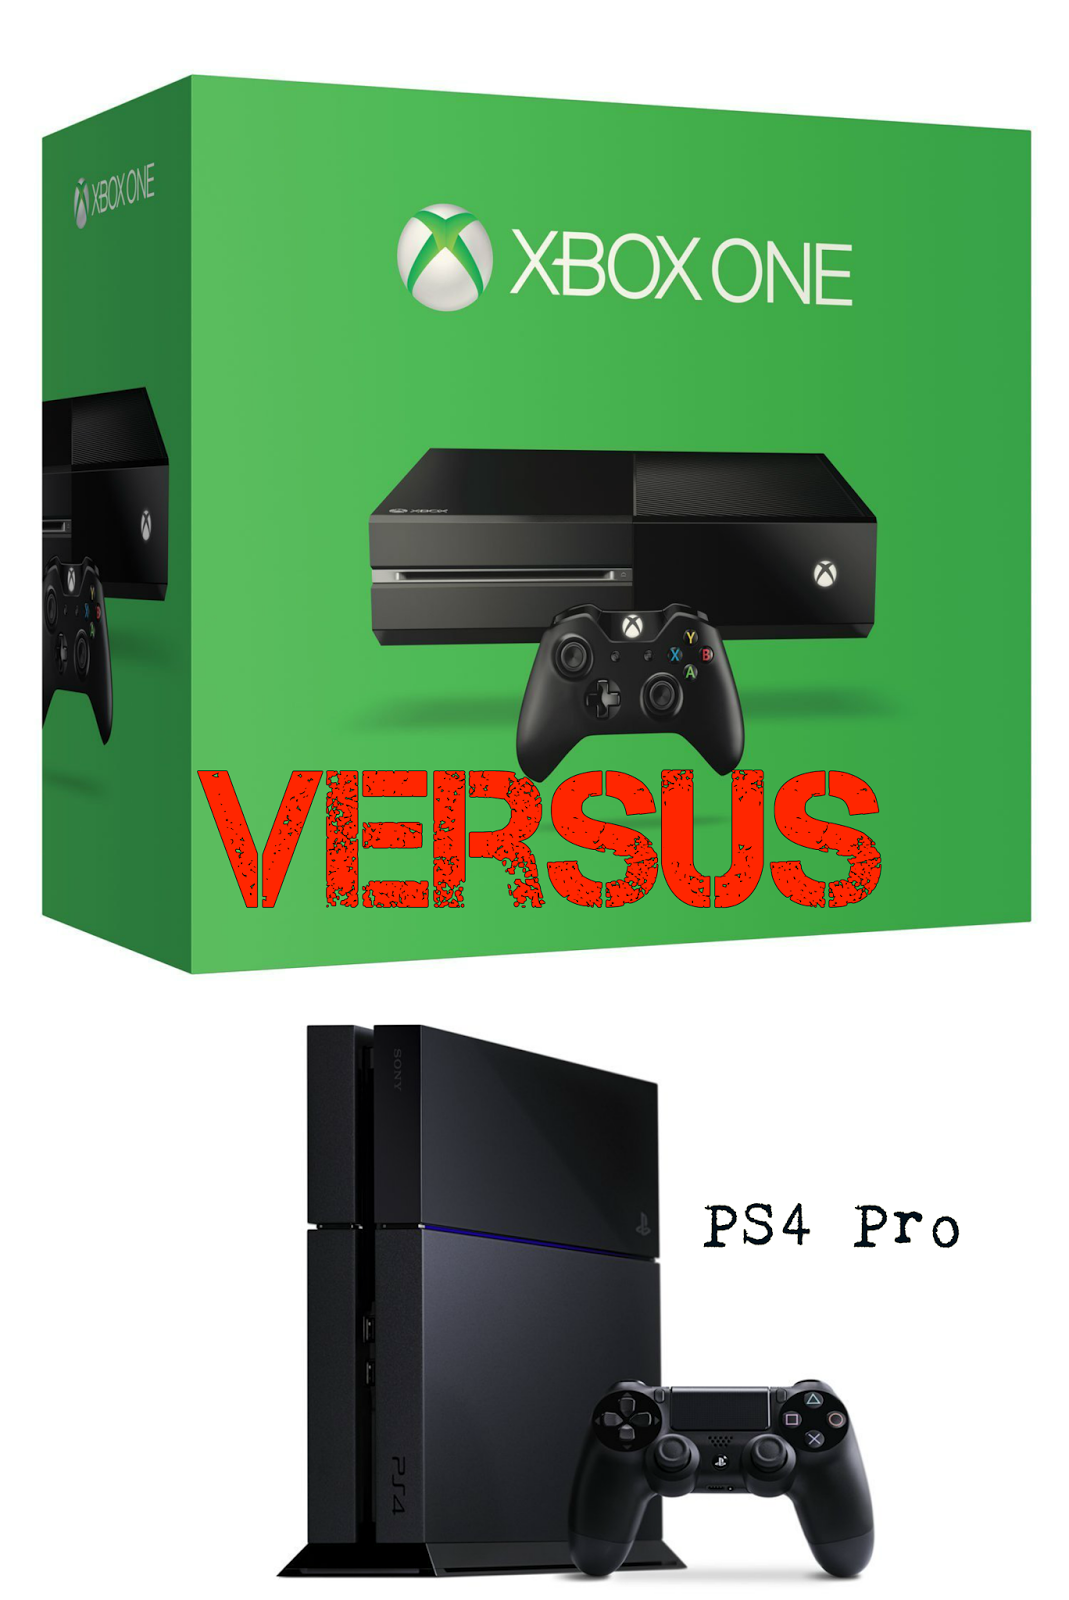 PS4 vs Xbox One: Which one is the Better Option?